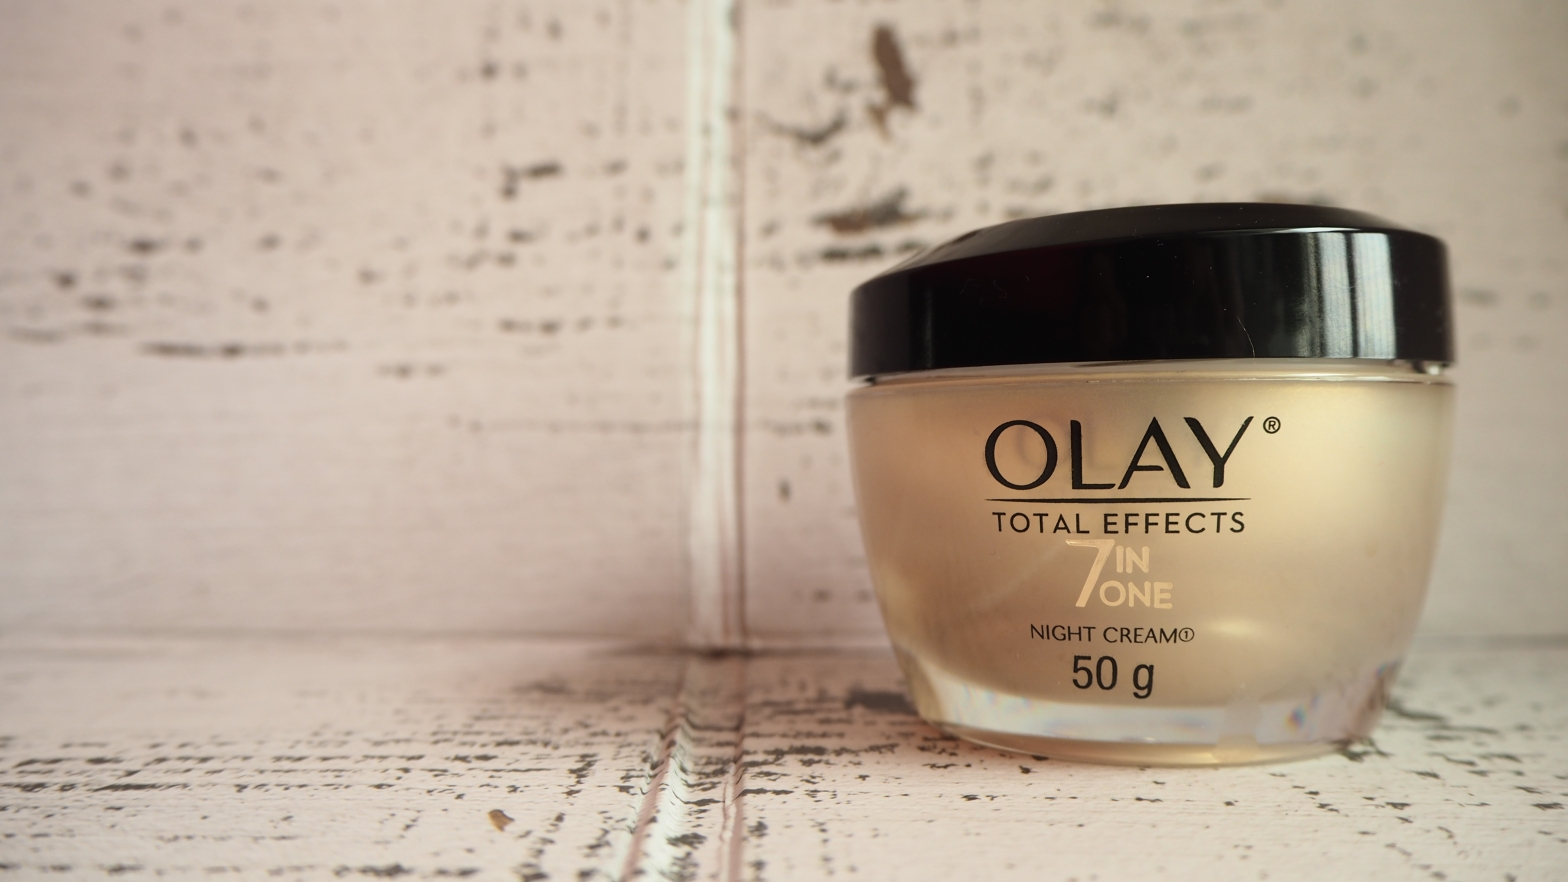 Review – Olay Total Effects 7 in One Night Cream – Lifestyle ...